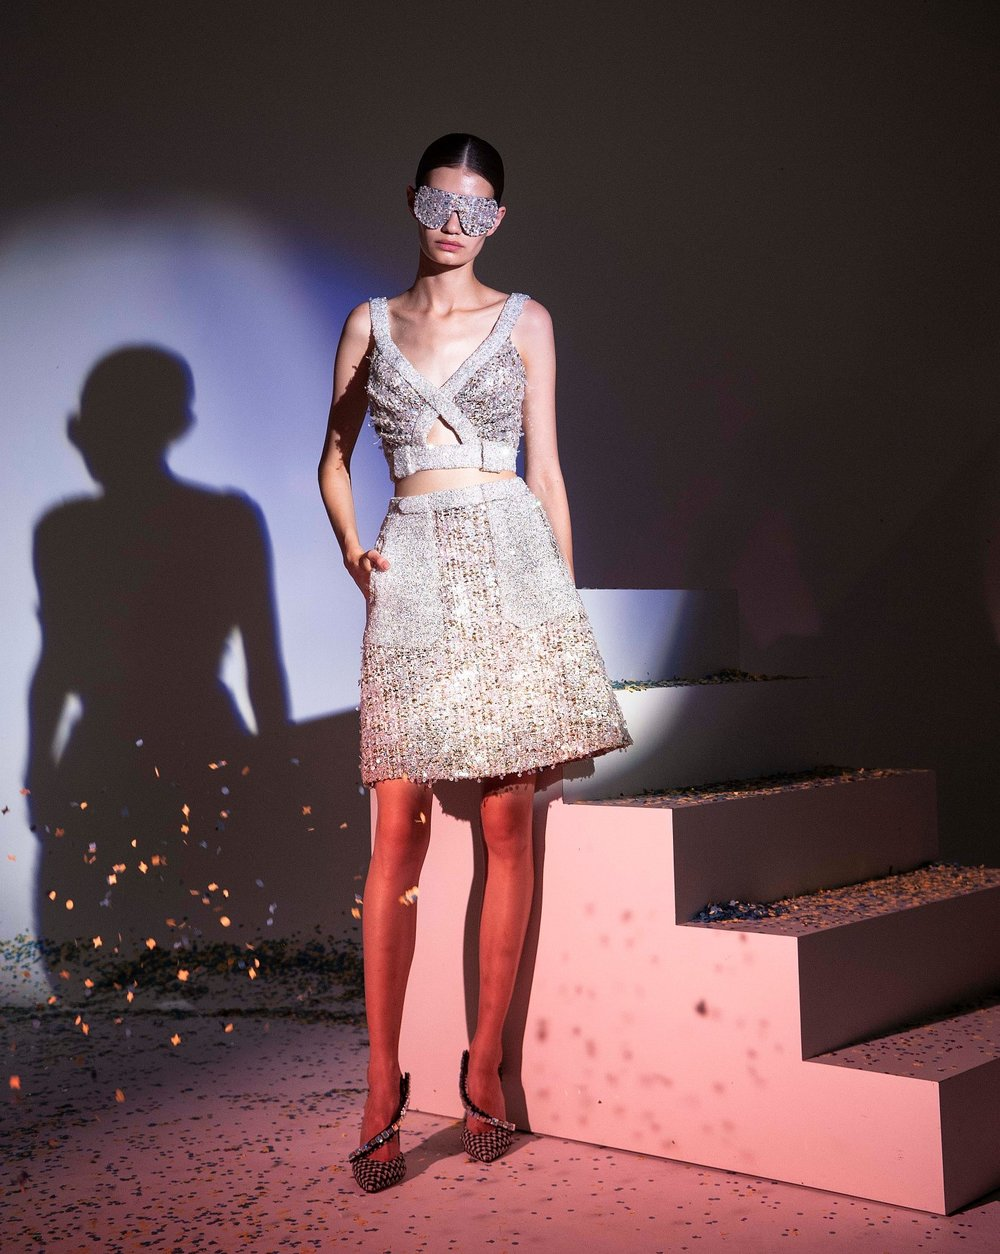 FW19-3 Iridescent Sequins Tweed Short Dress With Highlighted Swarovski Pockets And Neckline And Tweed Sunglasses .jpg